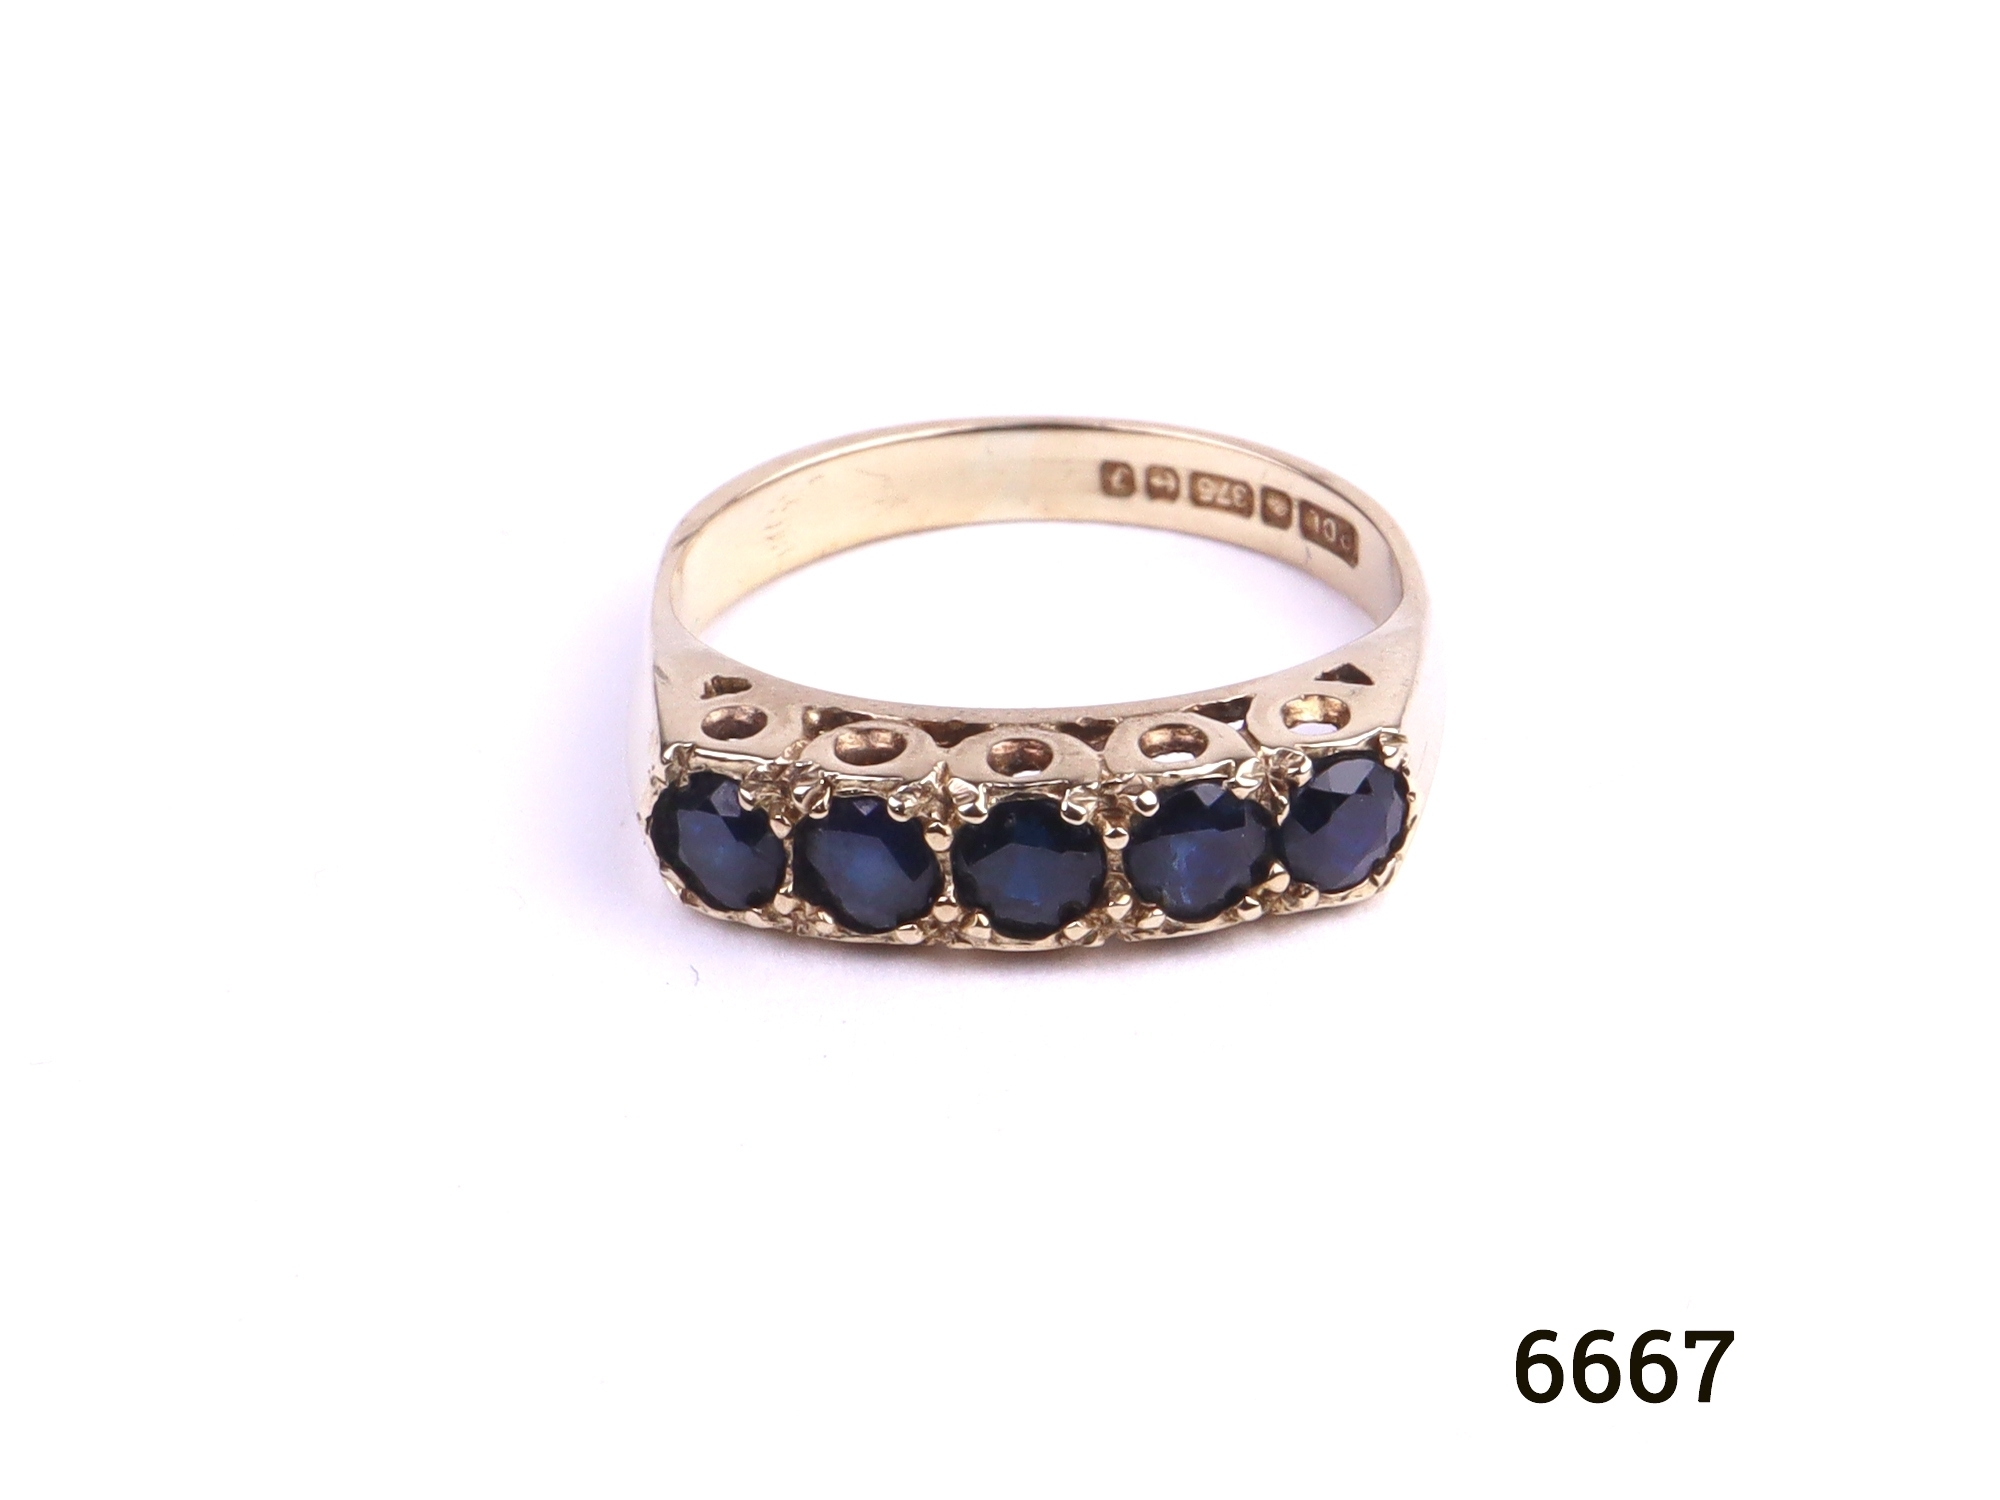 c1980 Birmingham assayed 9ct gold ring with 5 small sapphires by goldsmiths PDL Size L / 5.75 Ring weight 2.8g Main photo showing front view of ring on flat surface